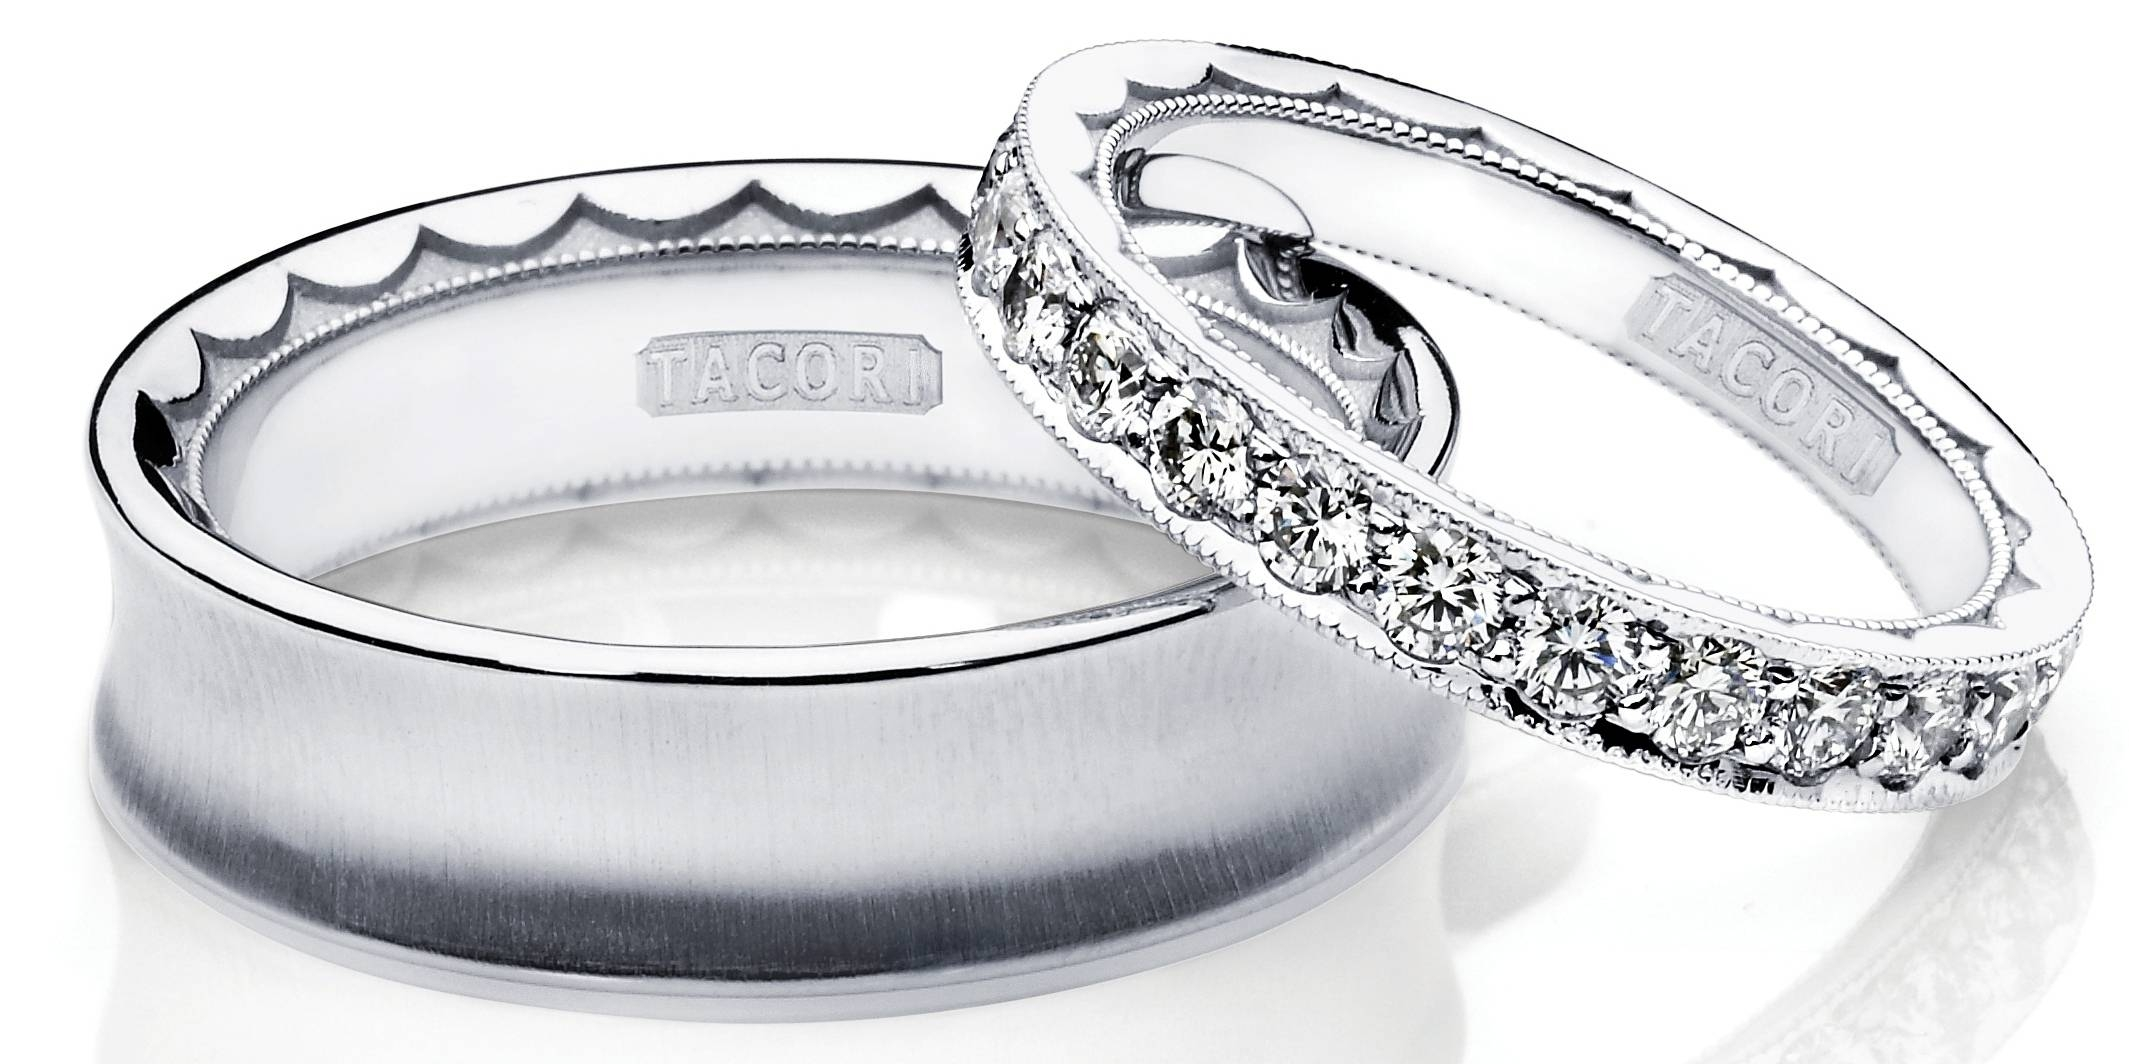 39 Platinum Wedding Band Sets, Platinum Diamond Ring Set: Wedding Intended For Platinum Wedding Bands For Her (View 3 of 15)